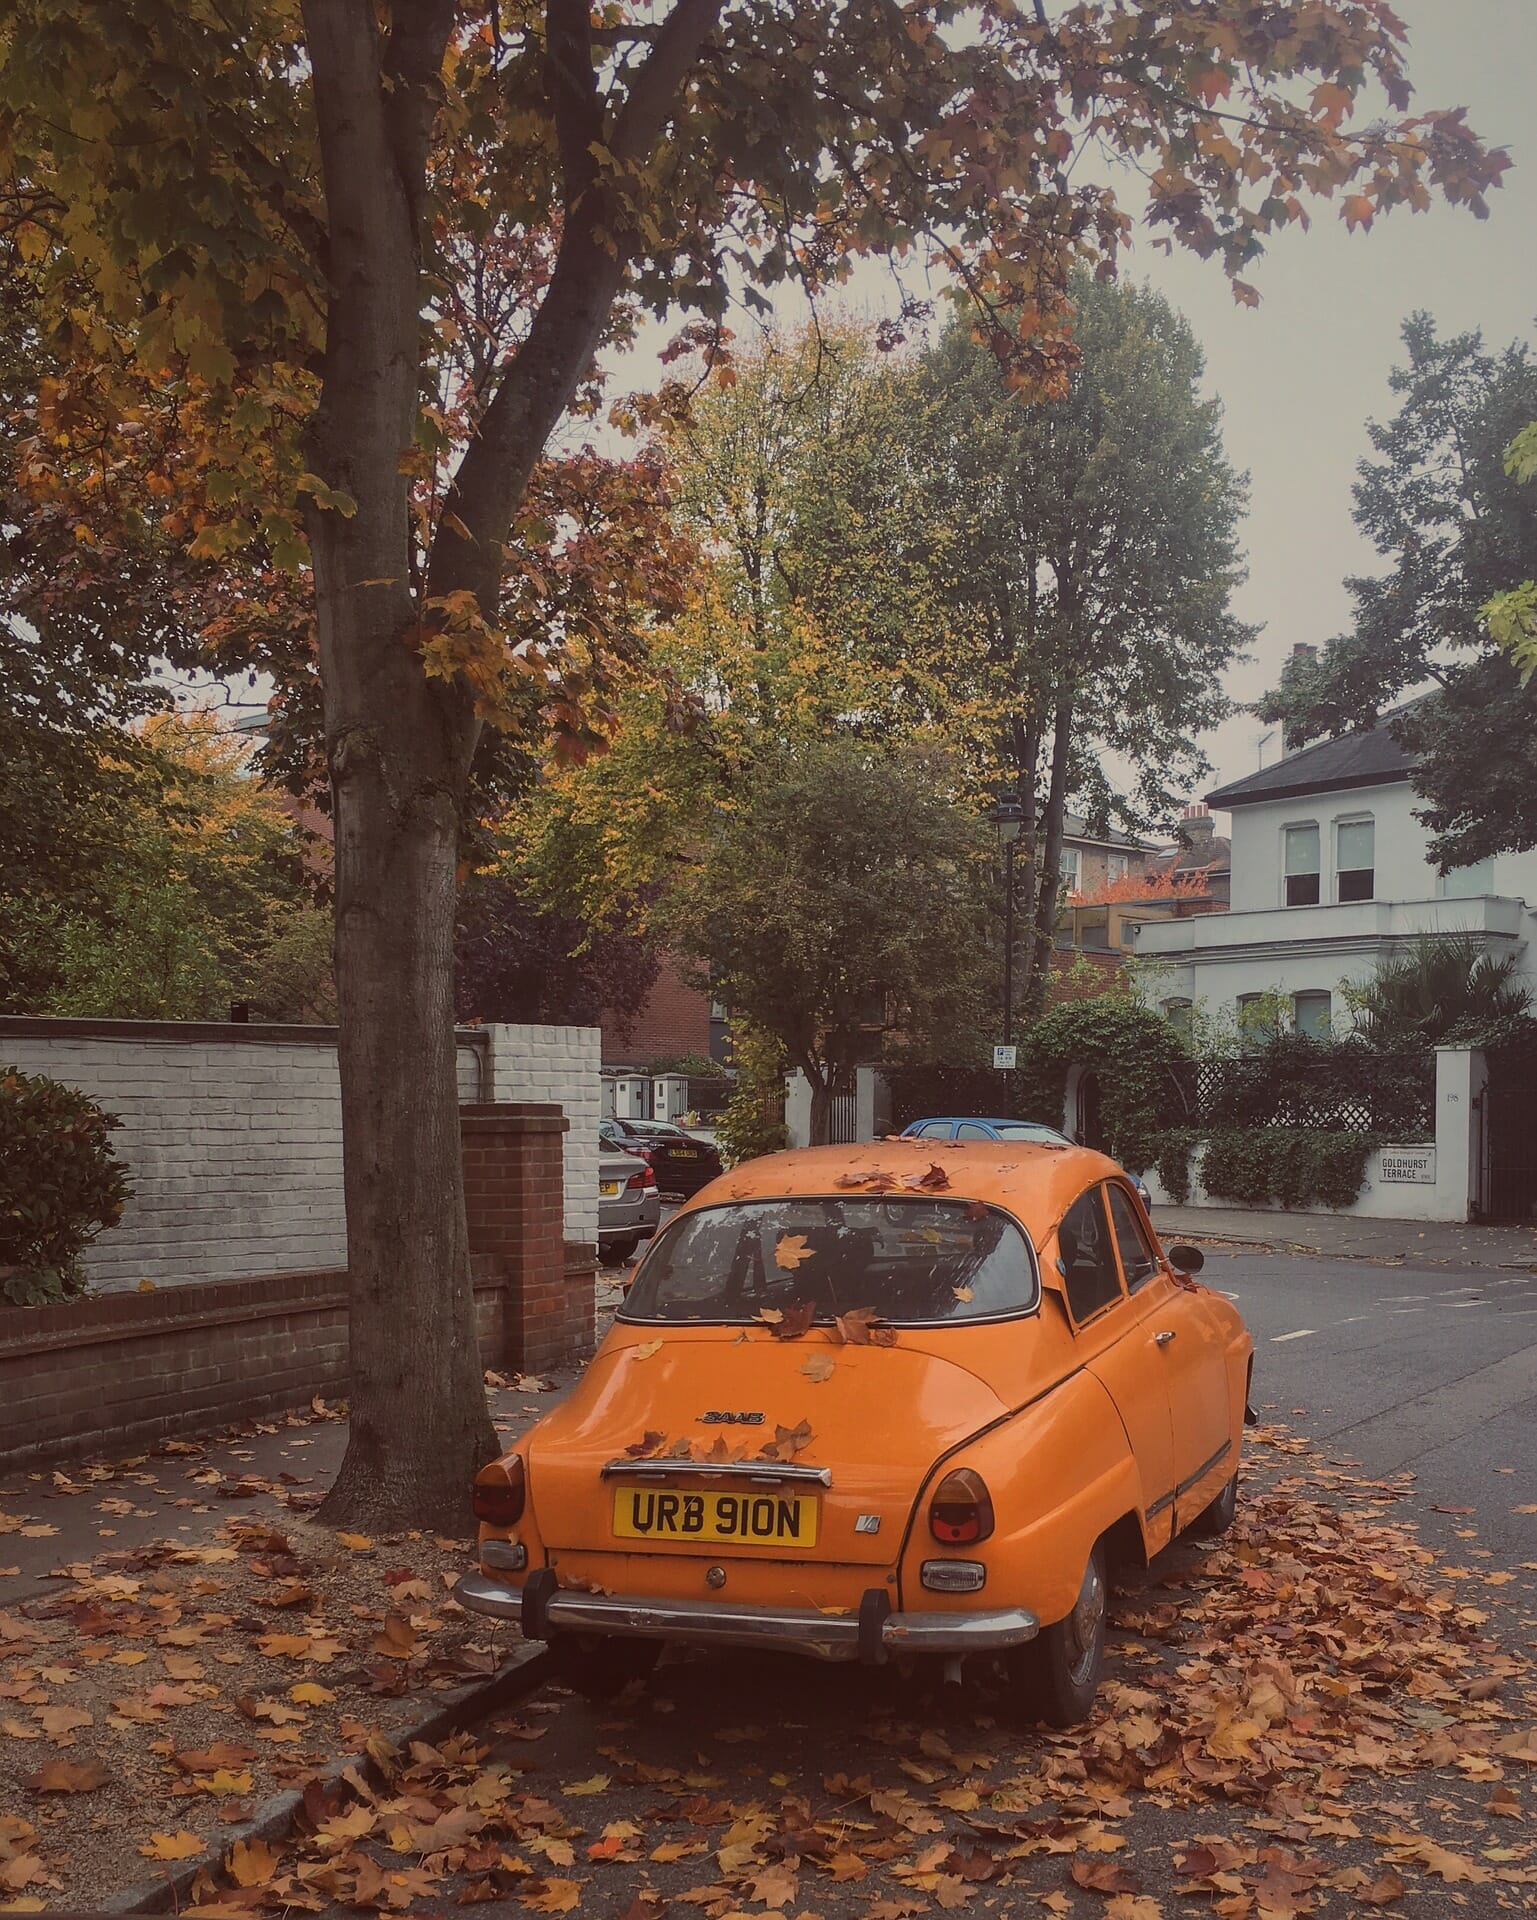 An old orange car under a tree with fall leaves around it